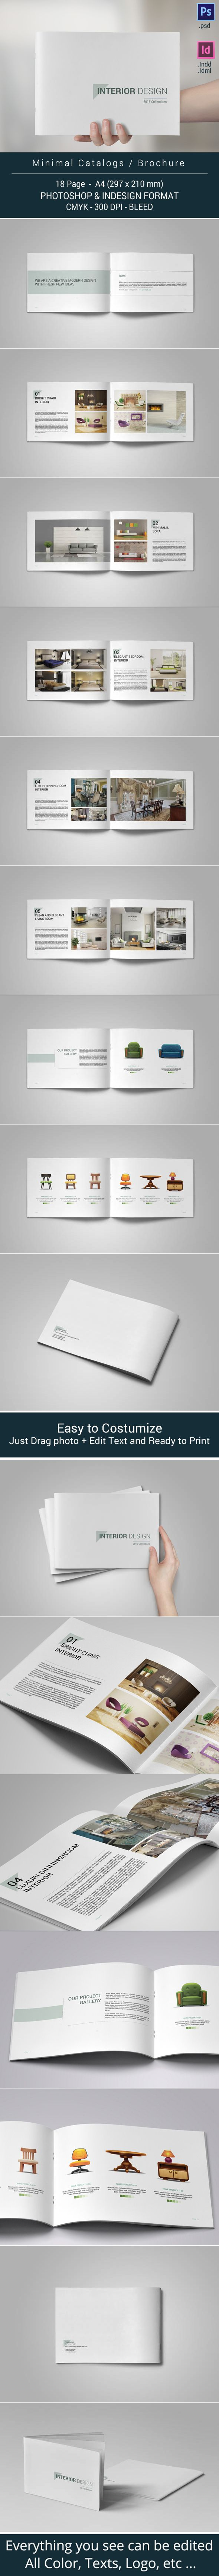 This is 18 page Minimal Portfolio Brochure template is for designers working on interior design catalogues, product catalogues, product/graphic design portfolios and agency based projects. Just drop in your own images and texts, and it's ready to Print.